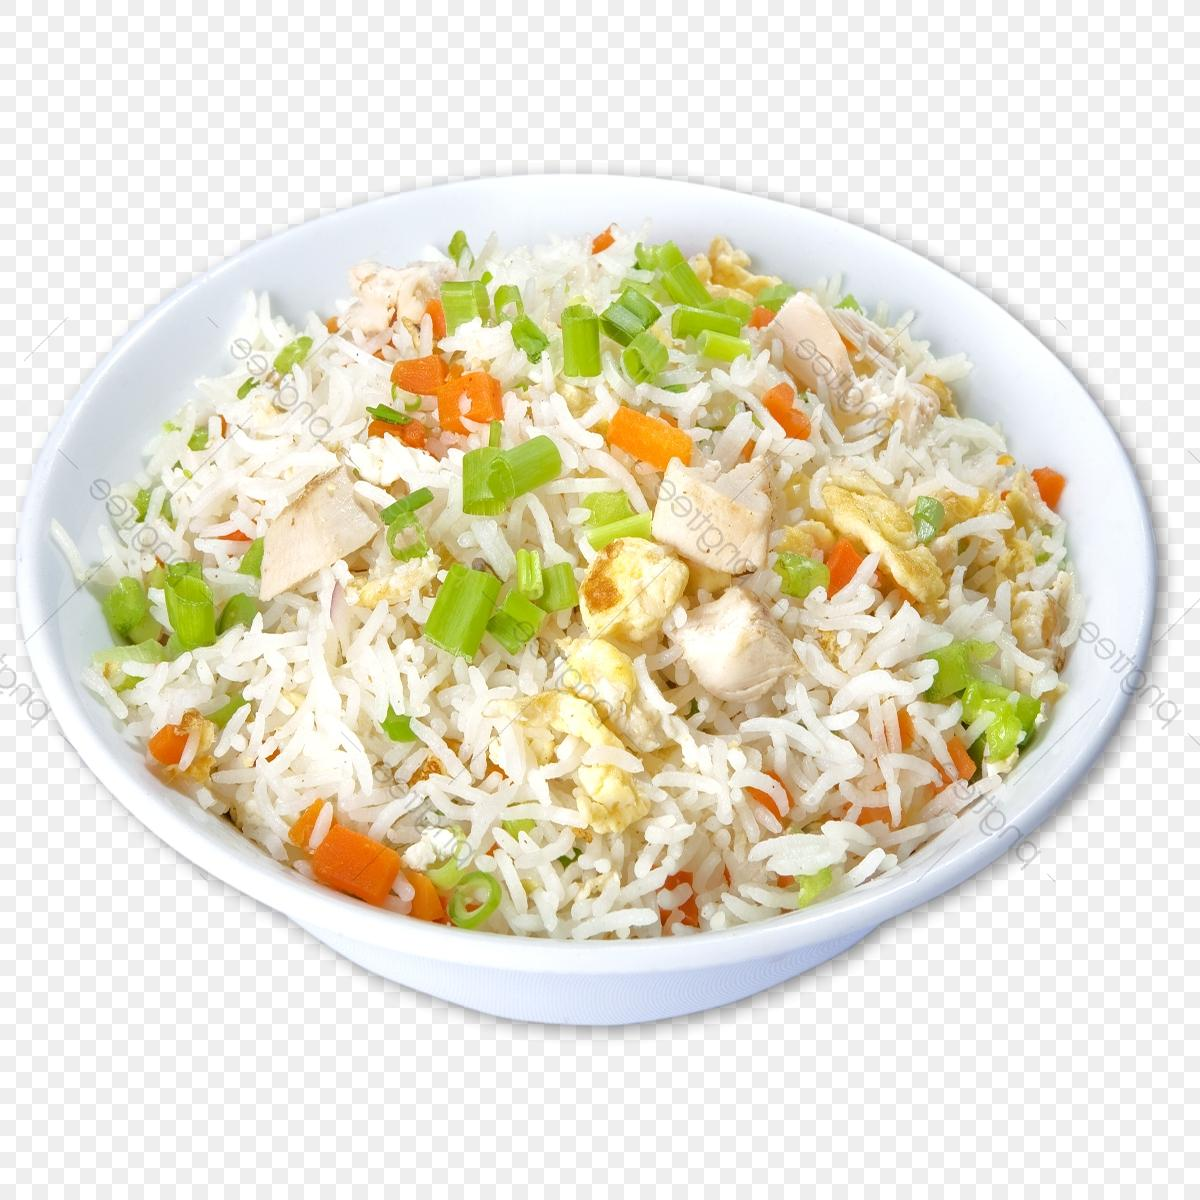 Best Free Fried Rice Clip Art Pictures » Free Vector Art, Images.